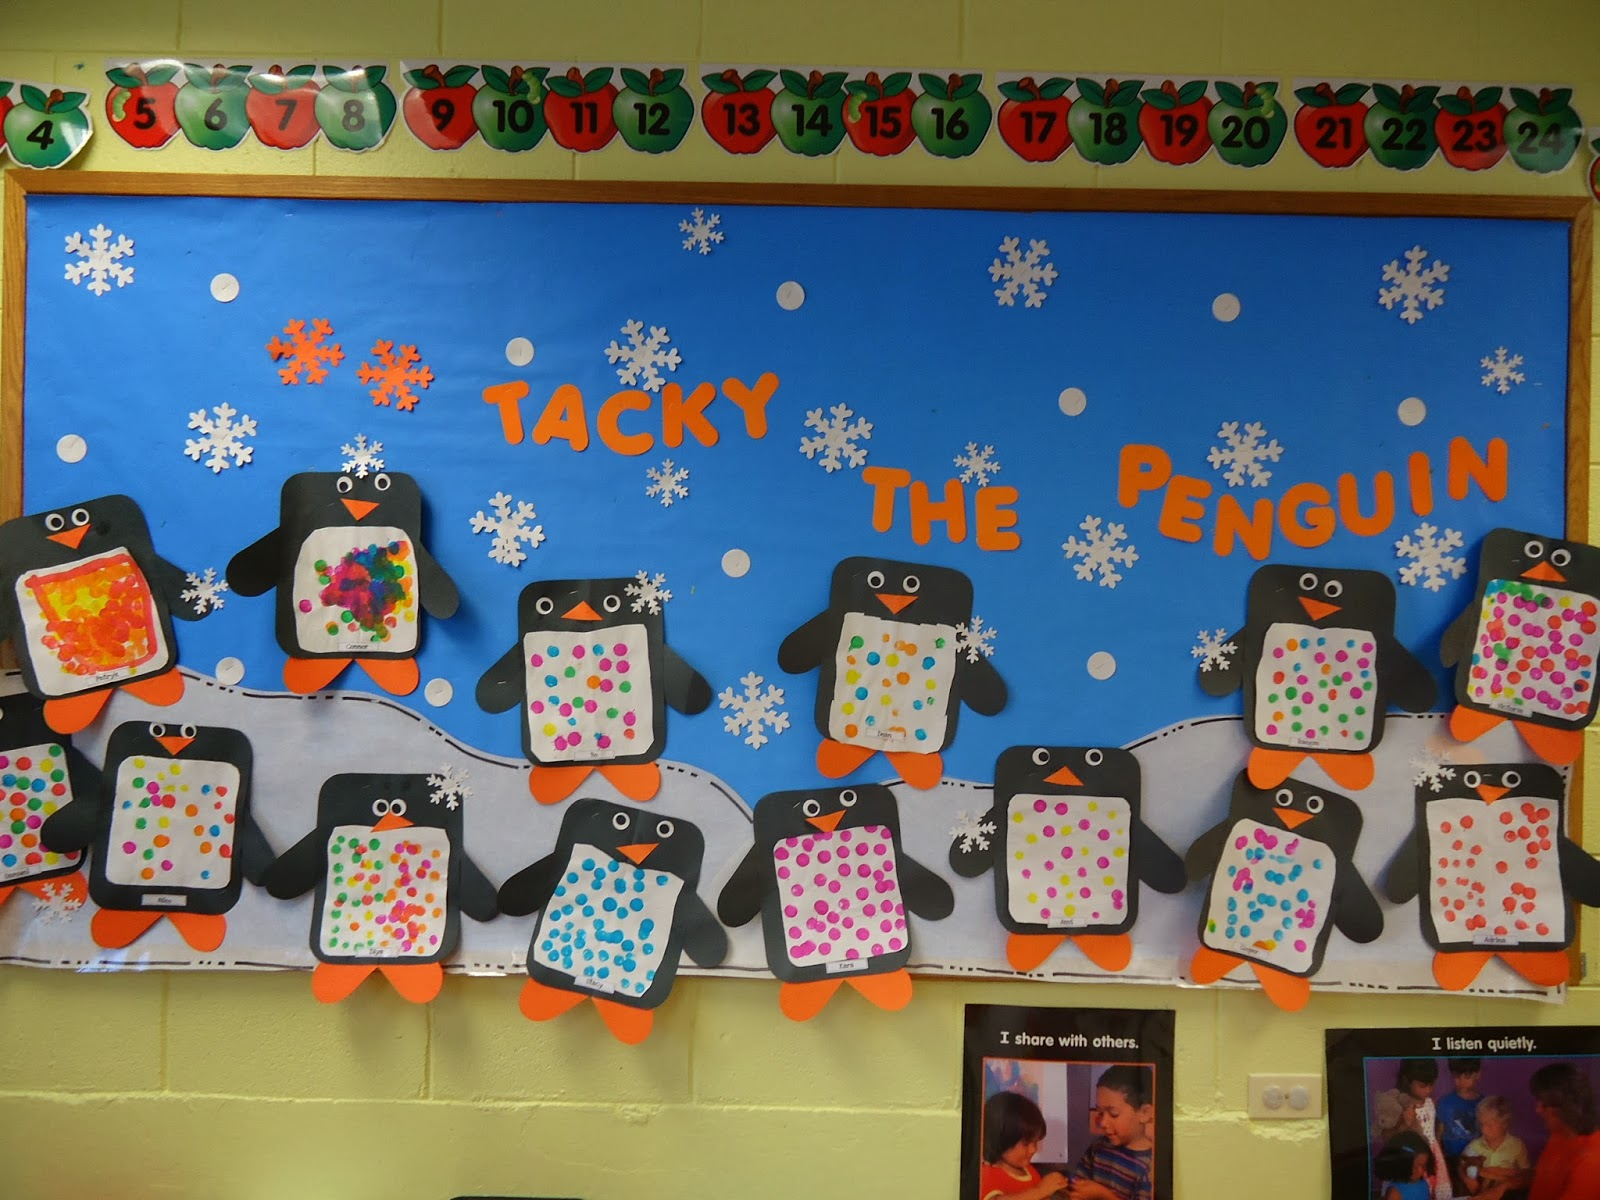 Trinity Preschool Mount Prospect Tacky The Penguin